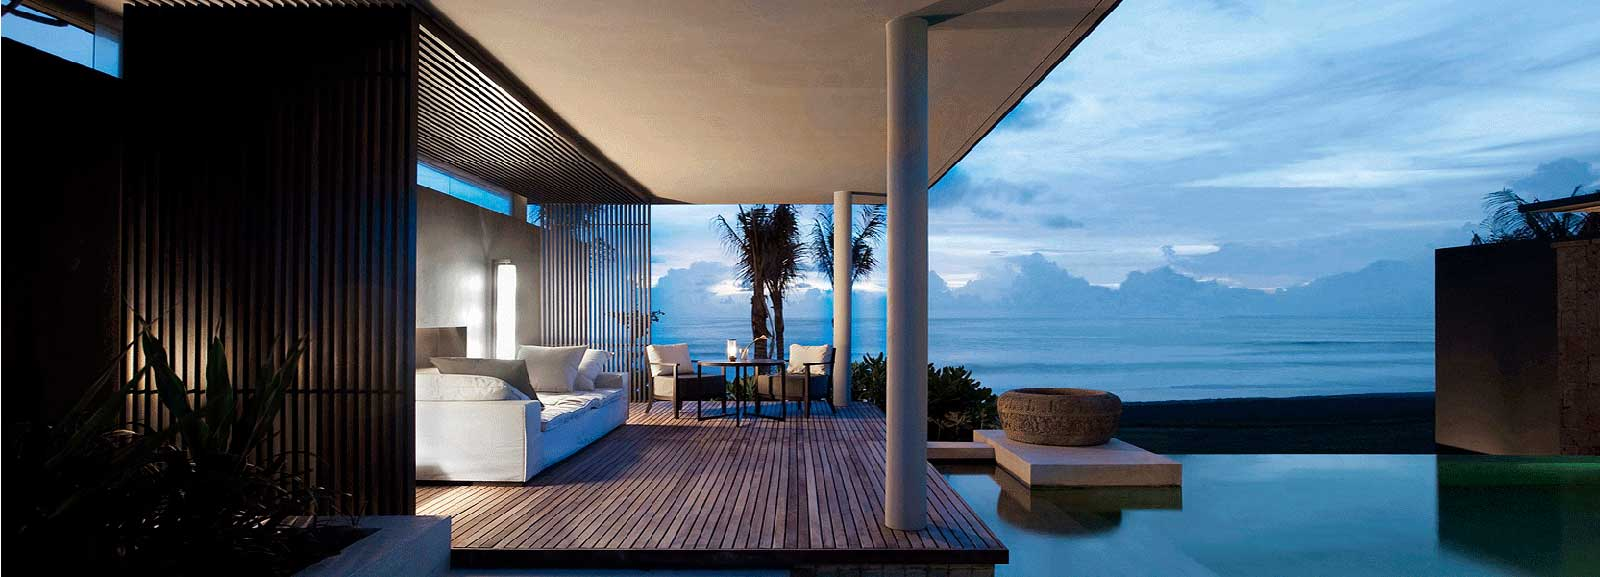 Luxurious villas that will take your breath away